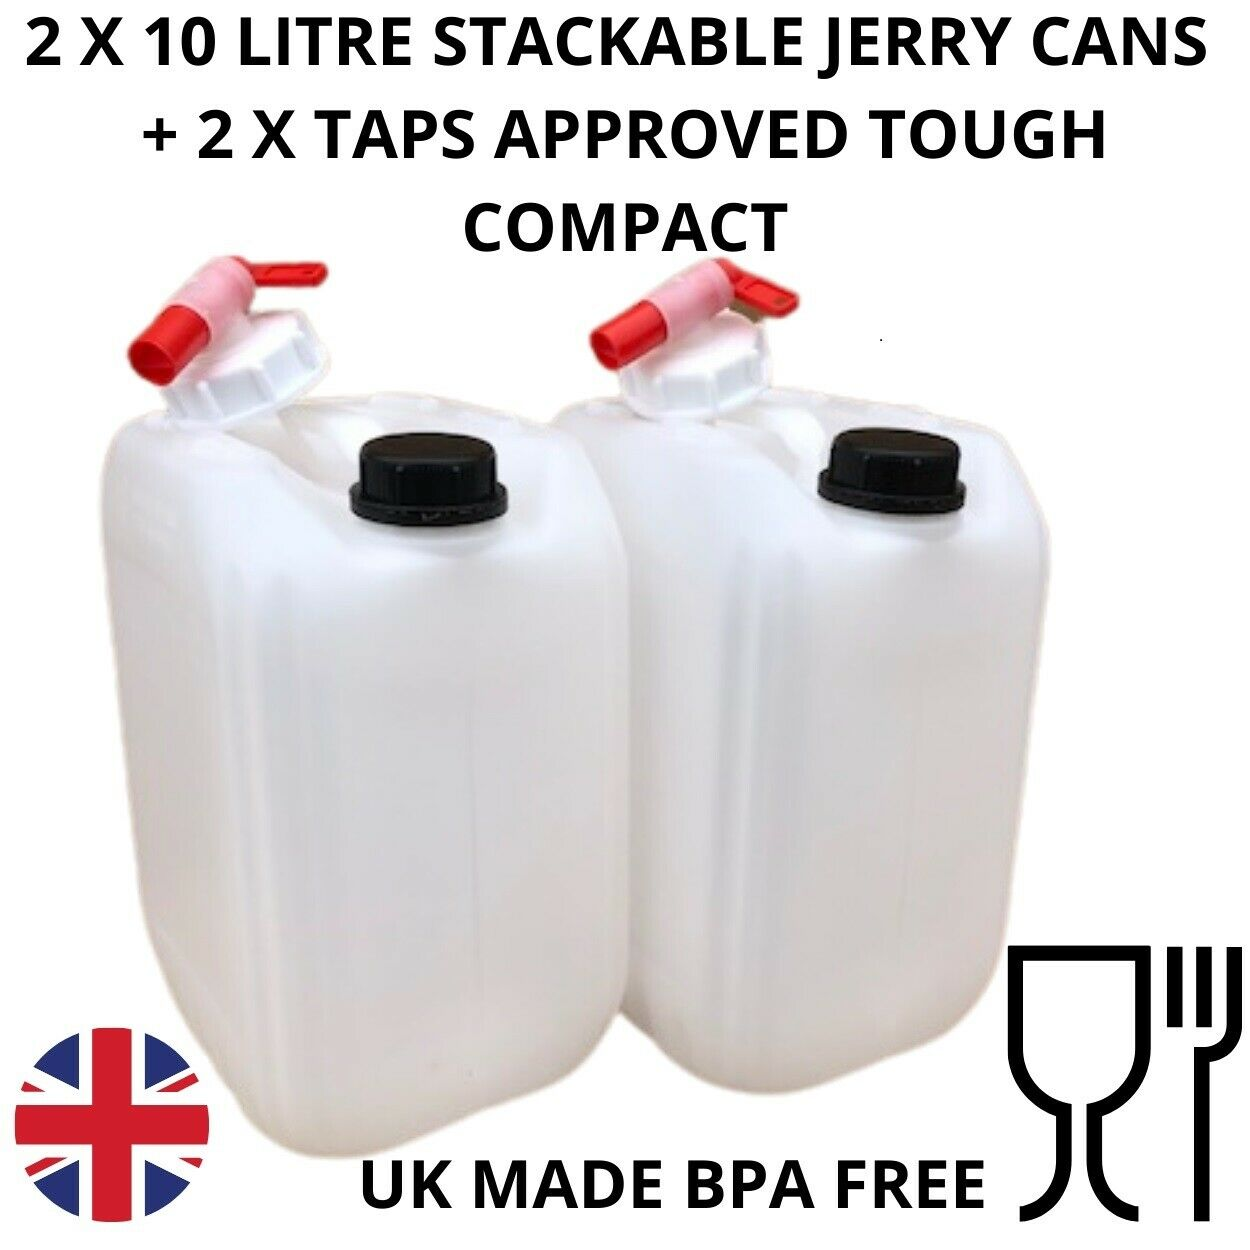 10 litre jerry can water carrier fully approved water safe stackable + taps x 2